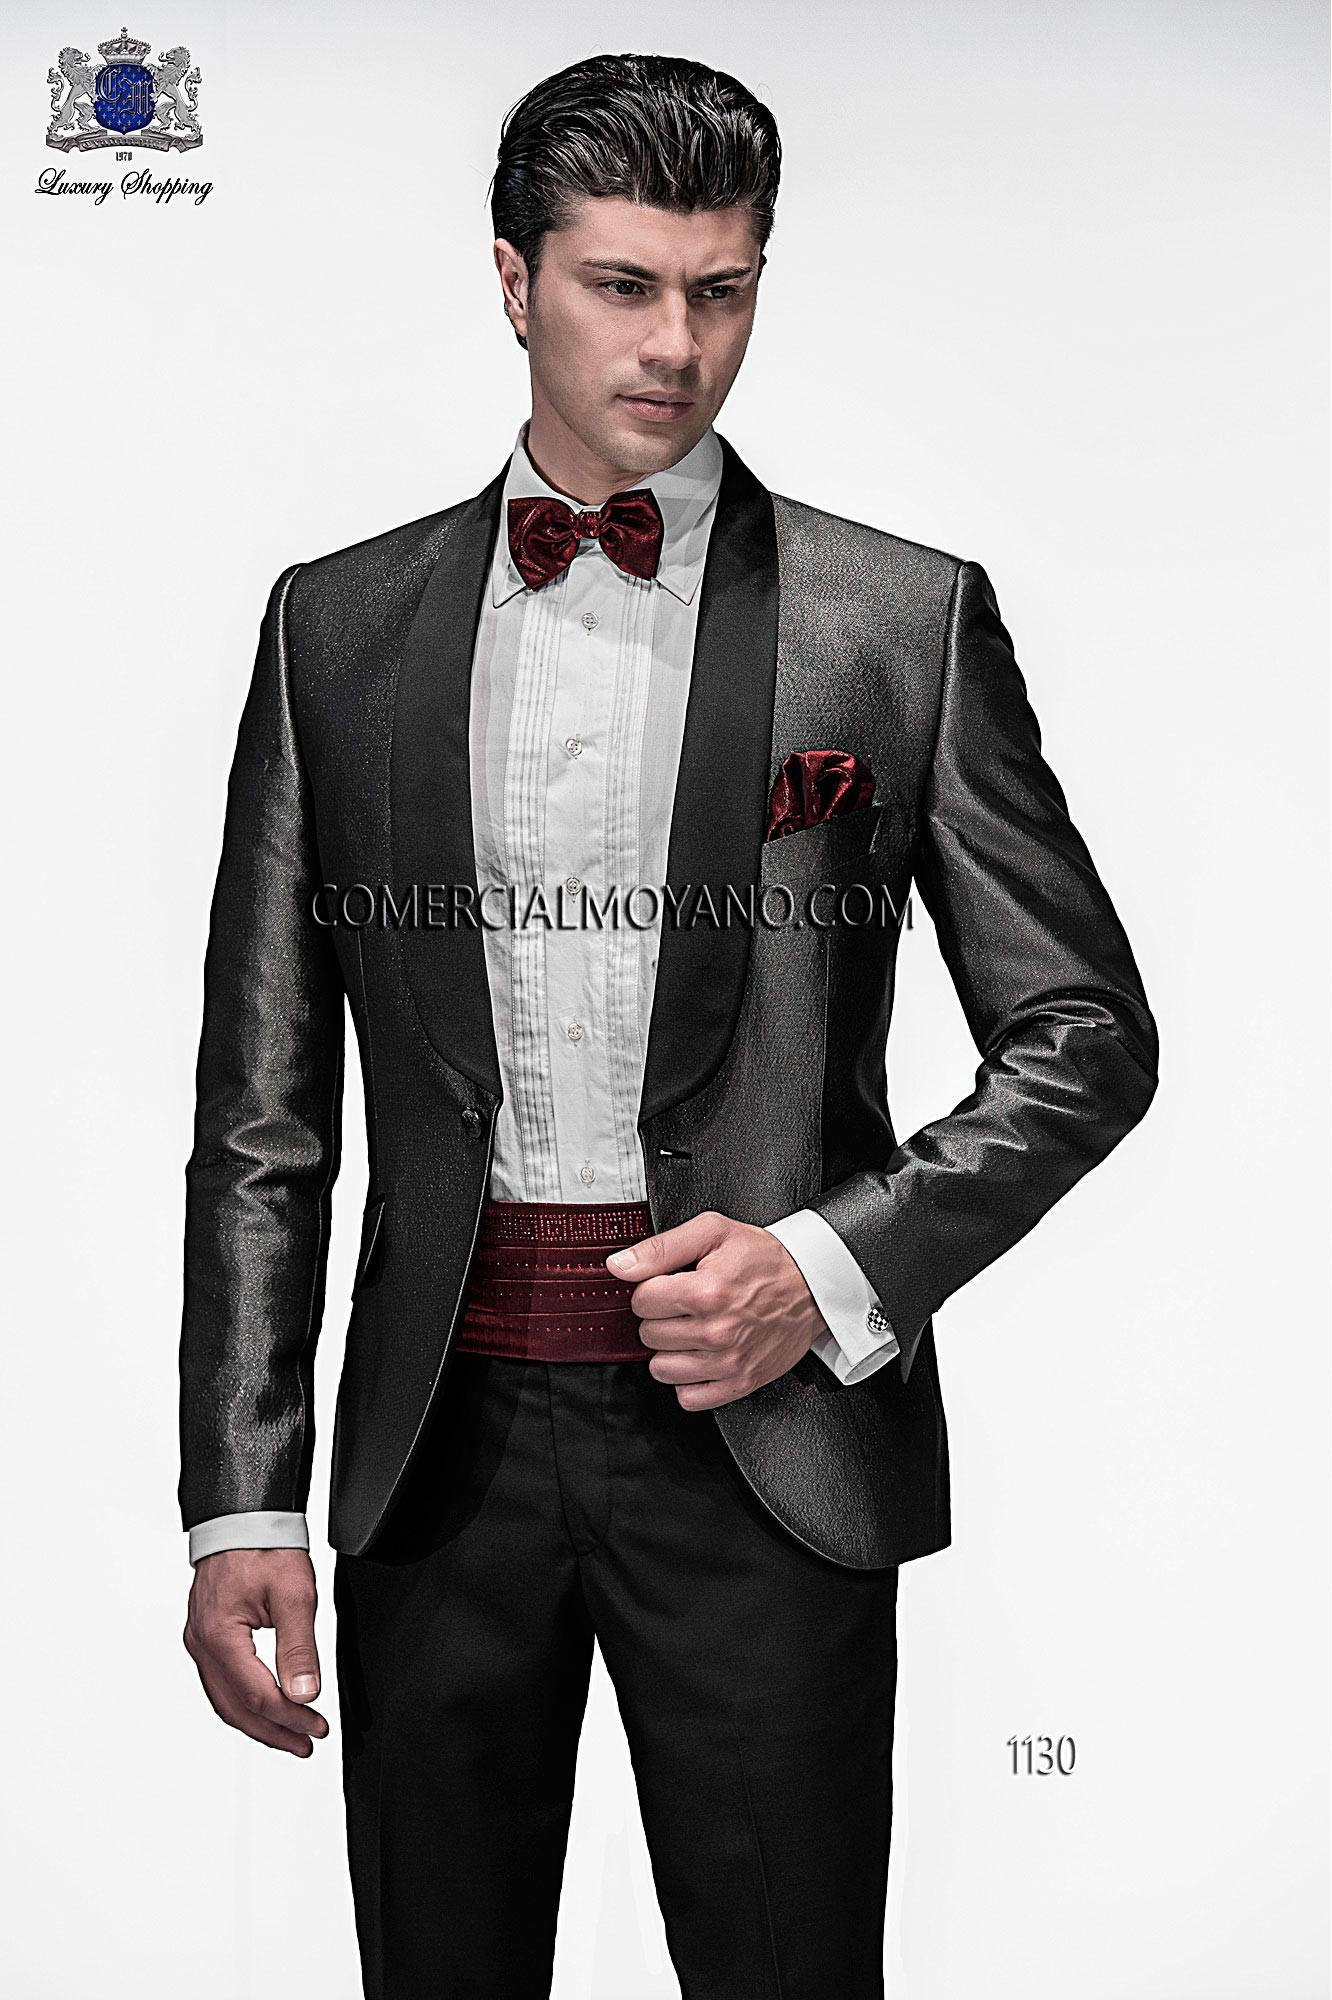 Emotion black/ silver men wedding suit model 1130 Ottavio Nuccio Gala